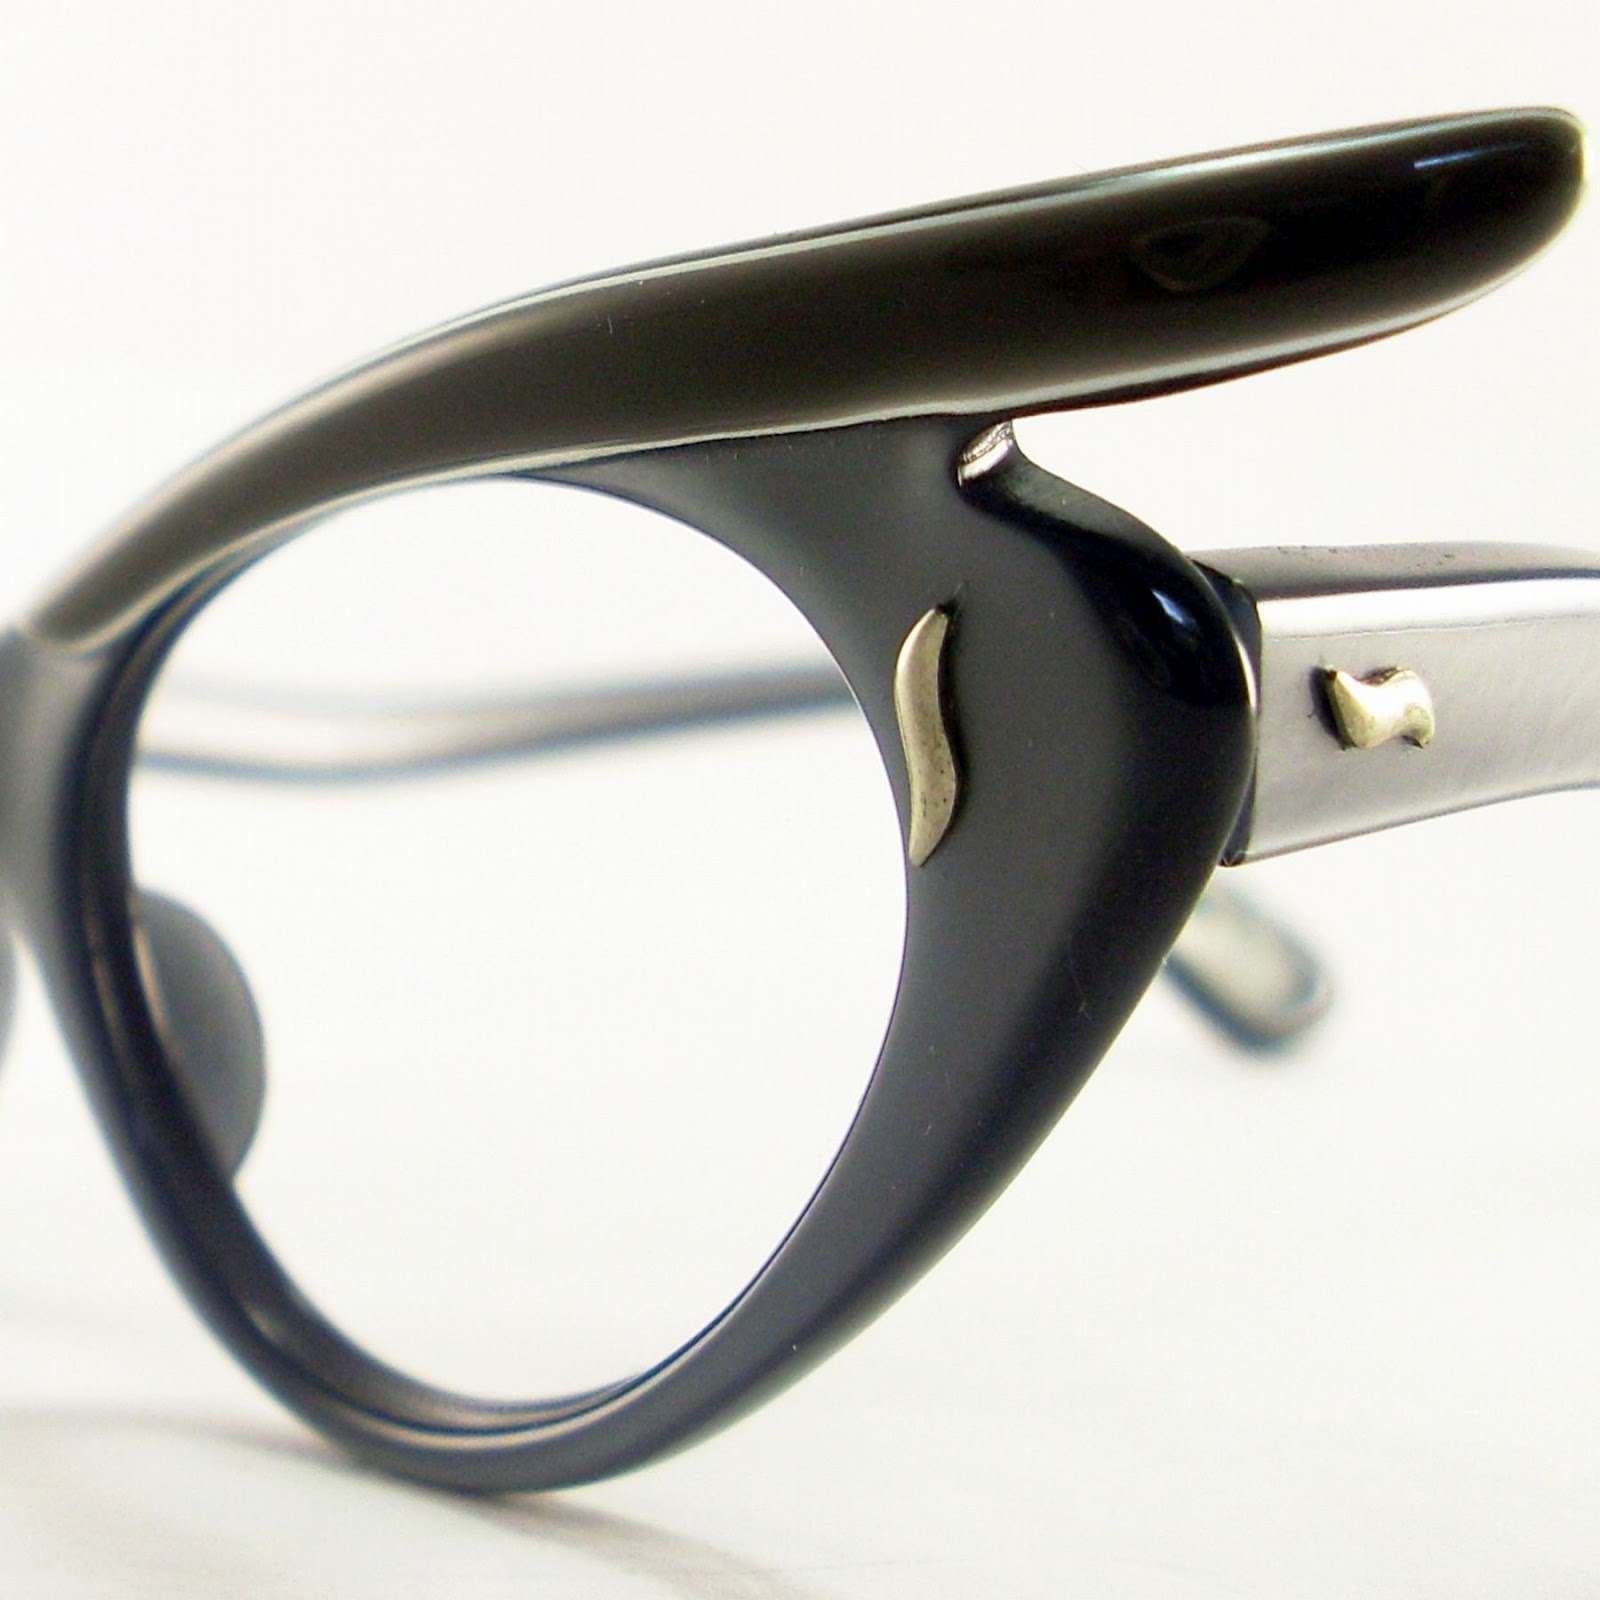 Cat Eye Frame Eye Glasses : Vintage Eyeglasses Frames Eyewear Sunglasses 50S: CAT EYE ...